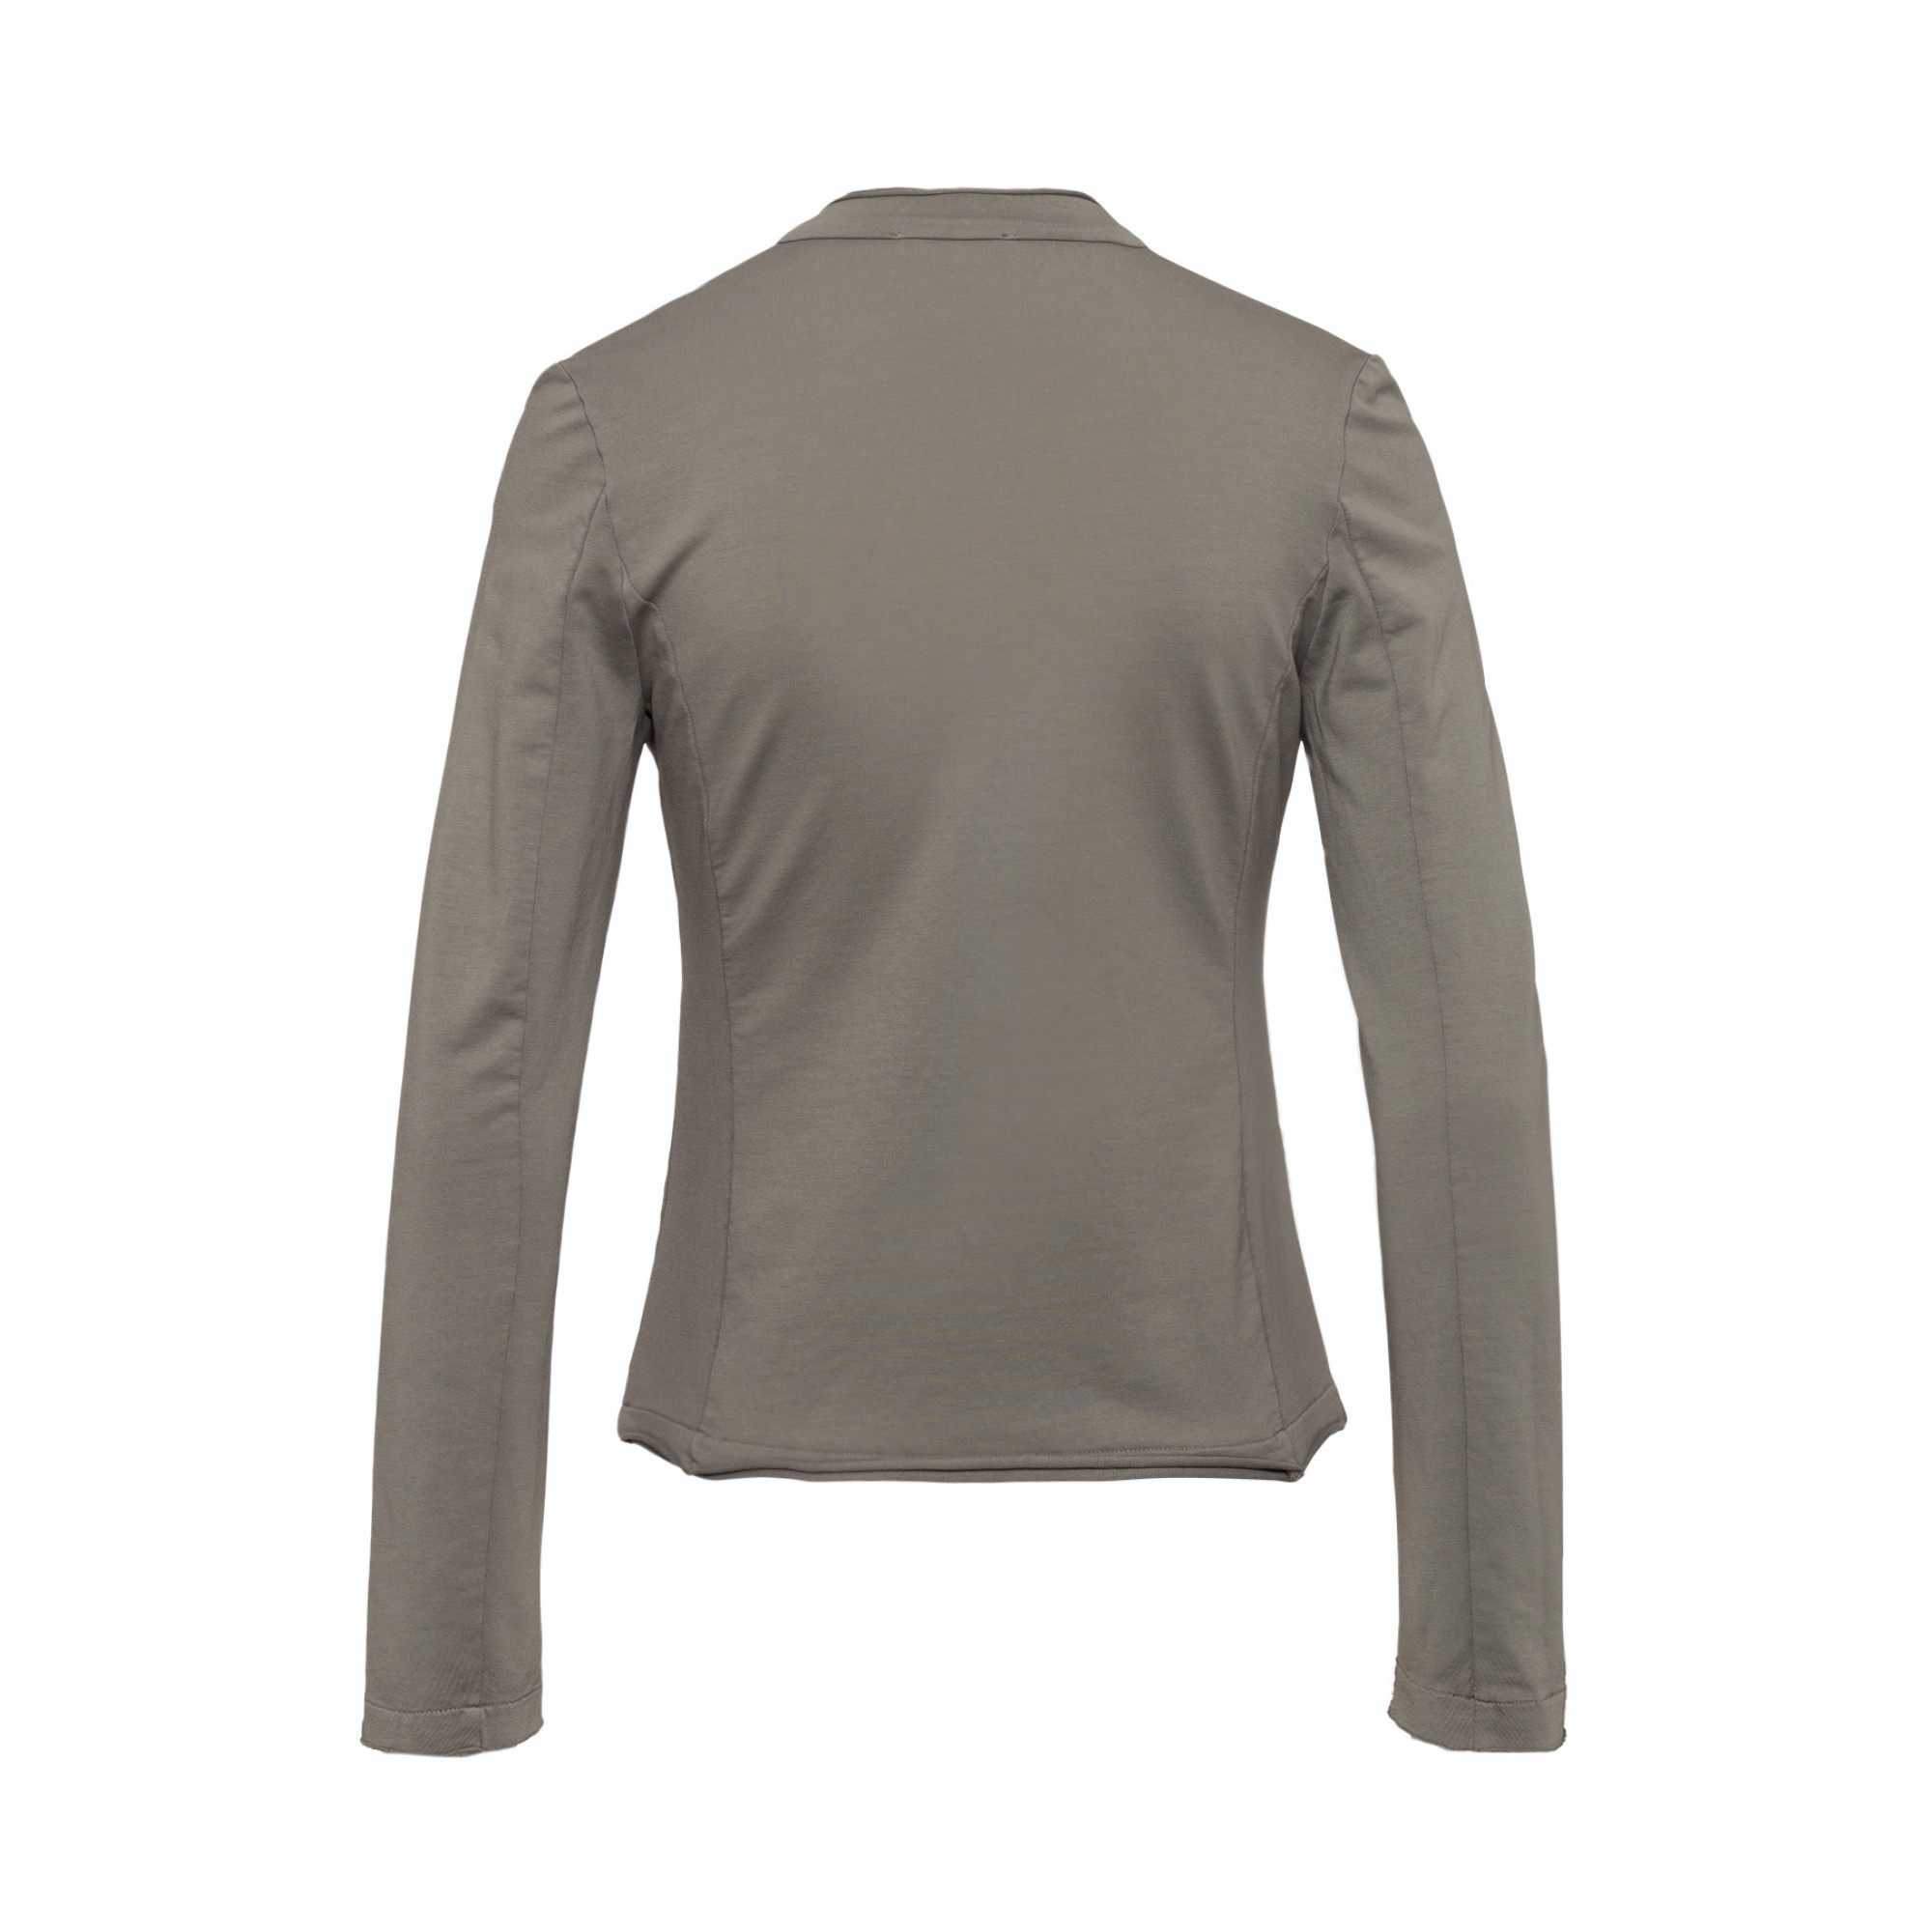 Sweatblazer, grau 91966606-0746 2